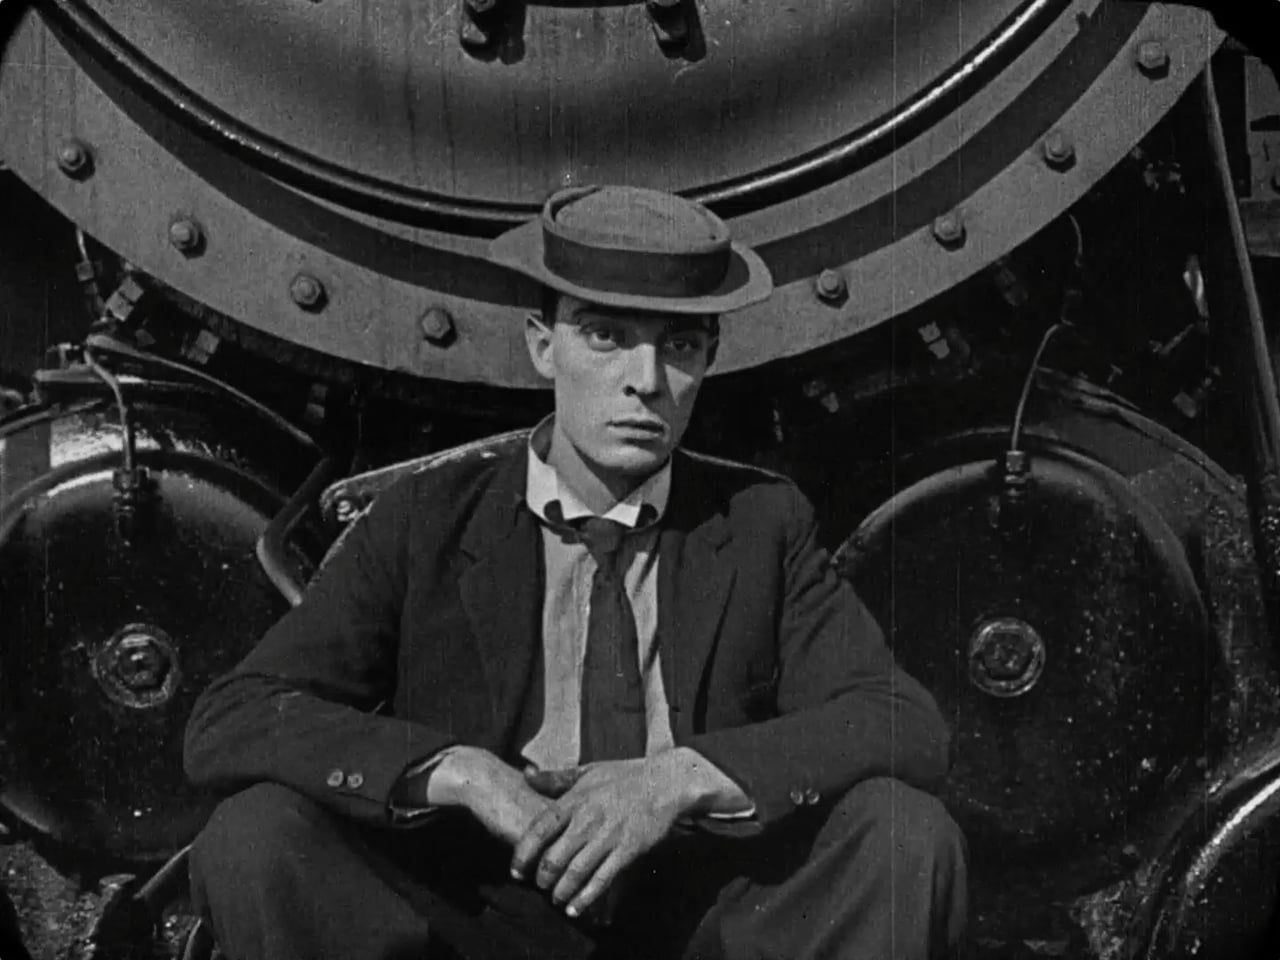 Before Edgar Wright and Wes Anderson, before Chuck Jones and Jackie Chan, there was Buster Keaton, one of the founding fathers of visual comedy. And nearly 100 years…